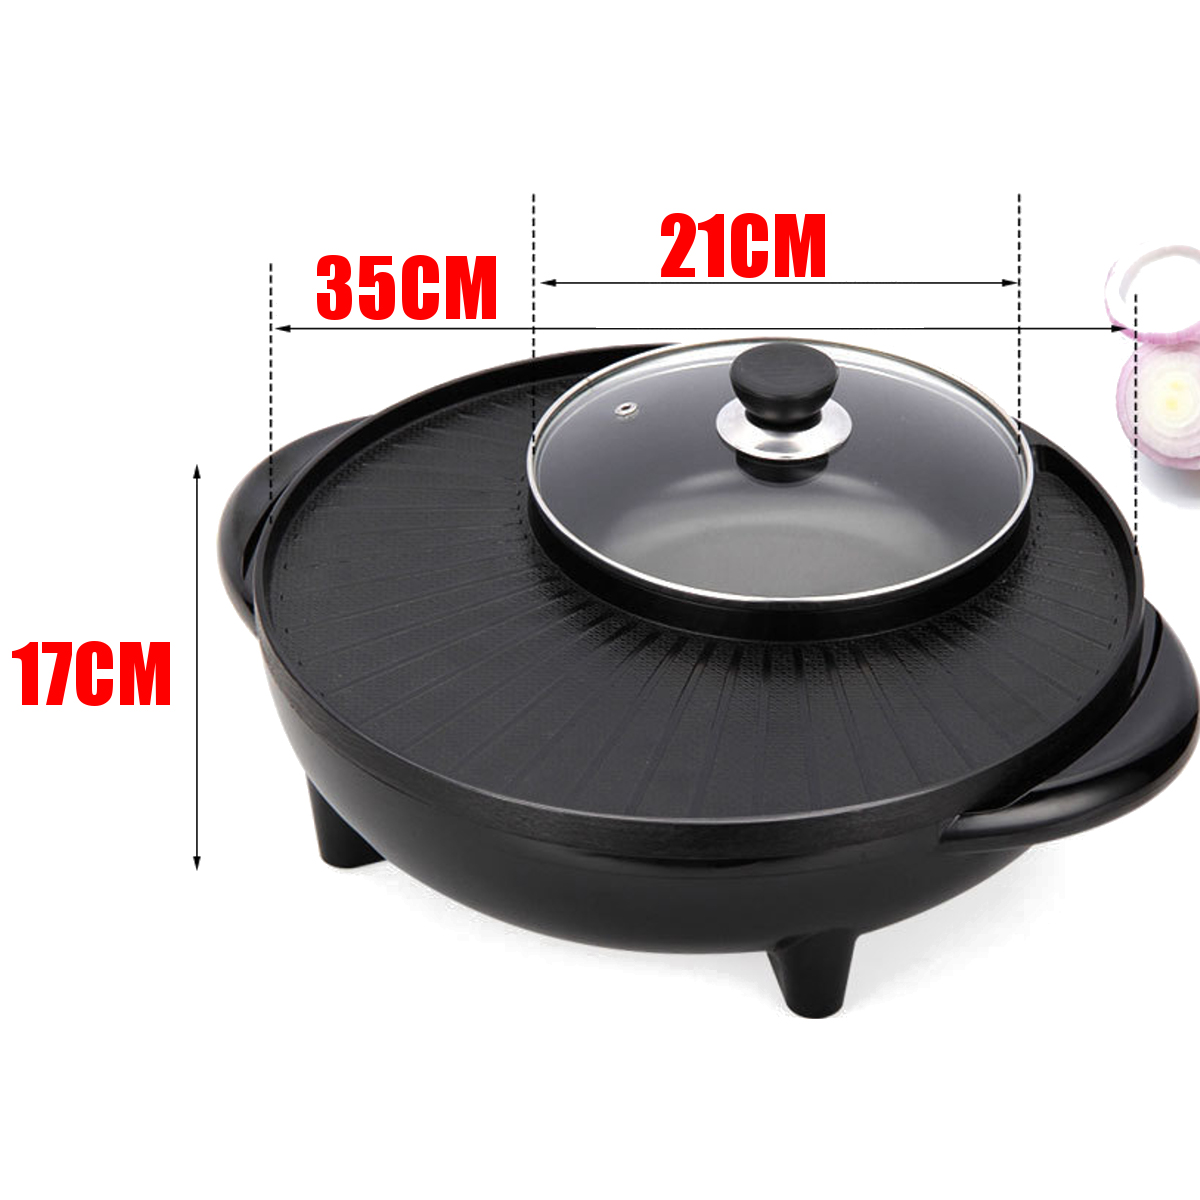 220V 2 in 1 Electric BBQ Grill Teppanyaki Steamboat Pan Hot Pot Kitchen Party Supplies